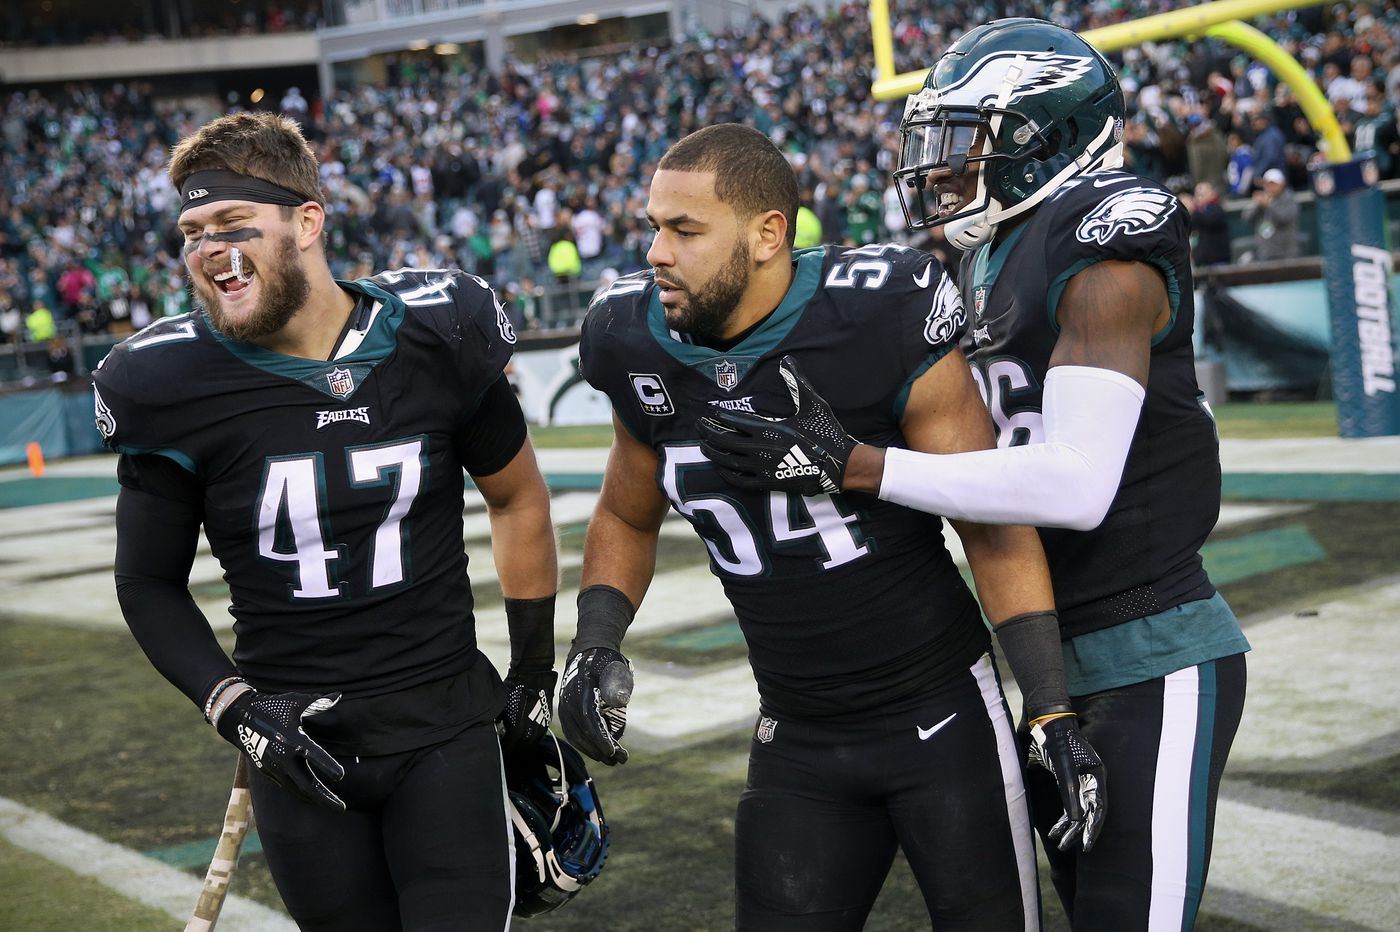 Will other teams continue to 'hunt' Eagles linebackers? | Bob Ford